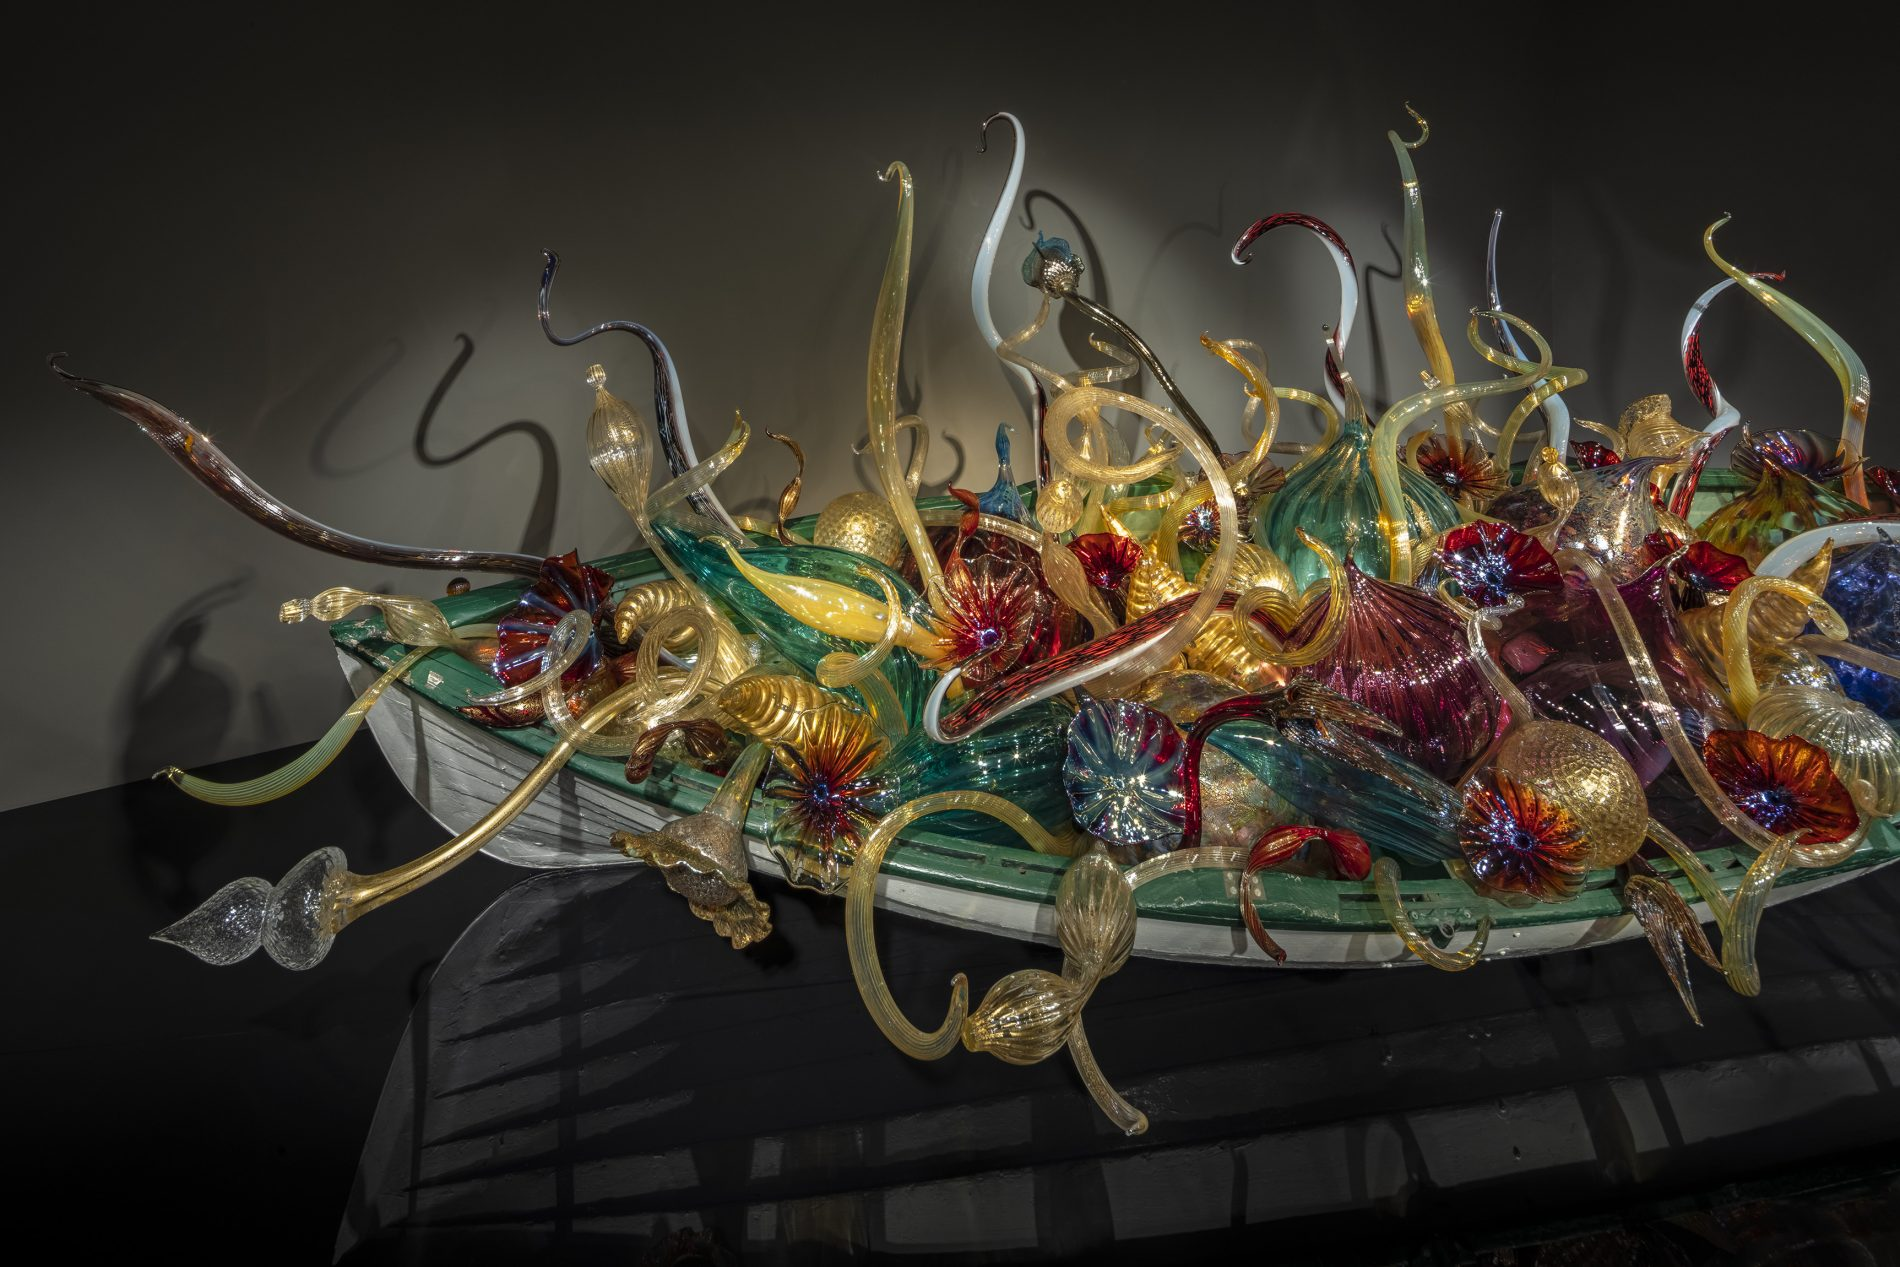 Dale Chihuly Gilded Fiori Boat (detail), 2020 5½ x 16 x 7½' Artis—Naples, The Baker Museum, Naples, Florida © Chihuly Studio. All Rights Reserved